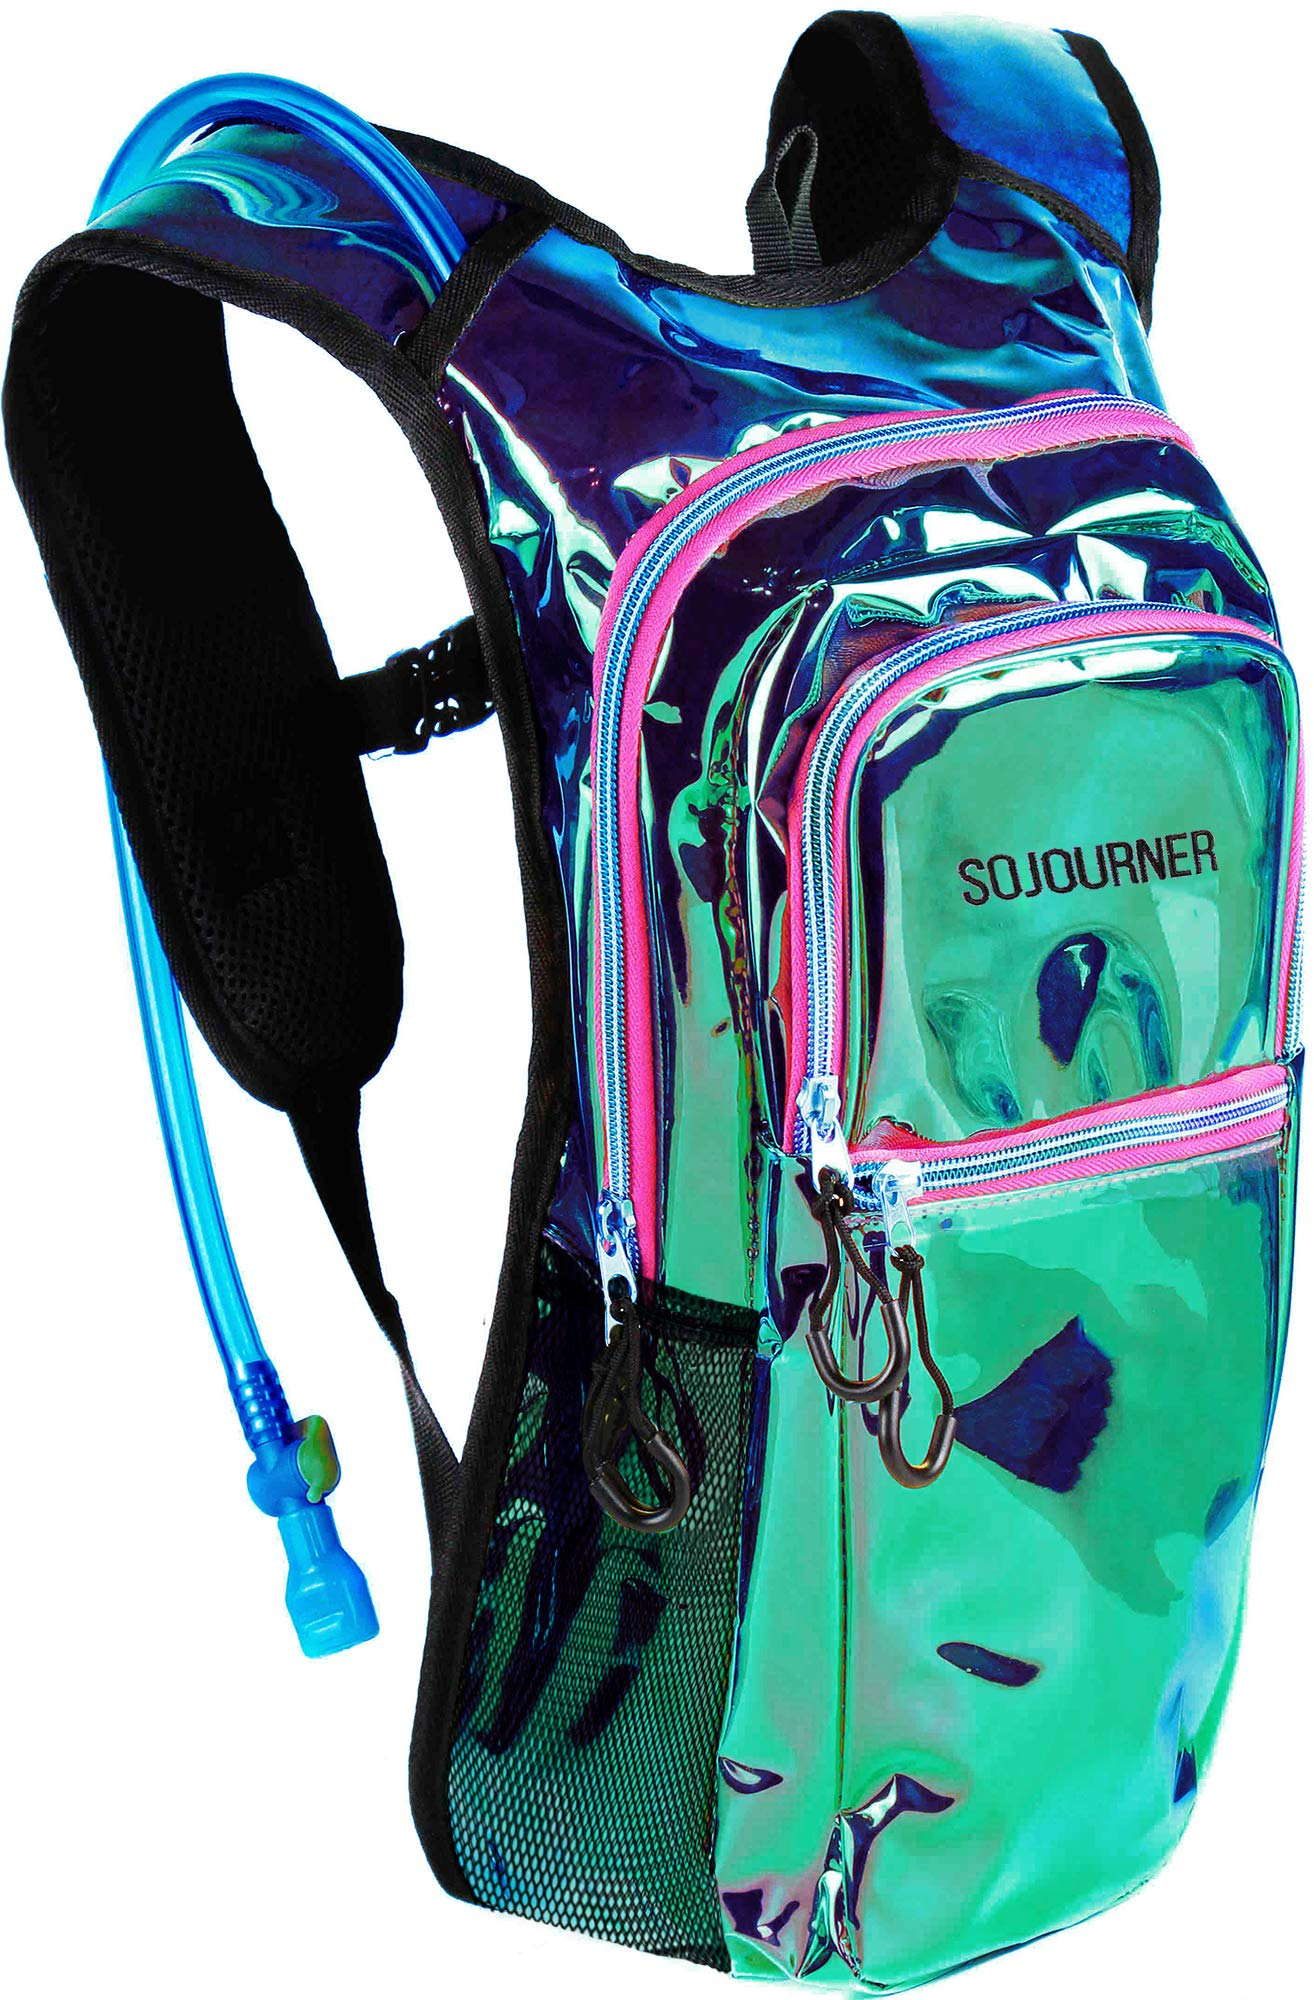 Sojourner Rave Hydration Pack Backpack - 2L Water Bladder Included for Festivals, Raves, Hiking, Biking, Climbing, Running and More (Medium) (Laser Holographic - Purple)